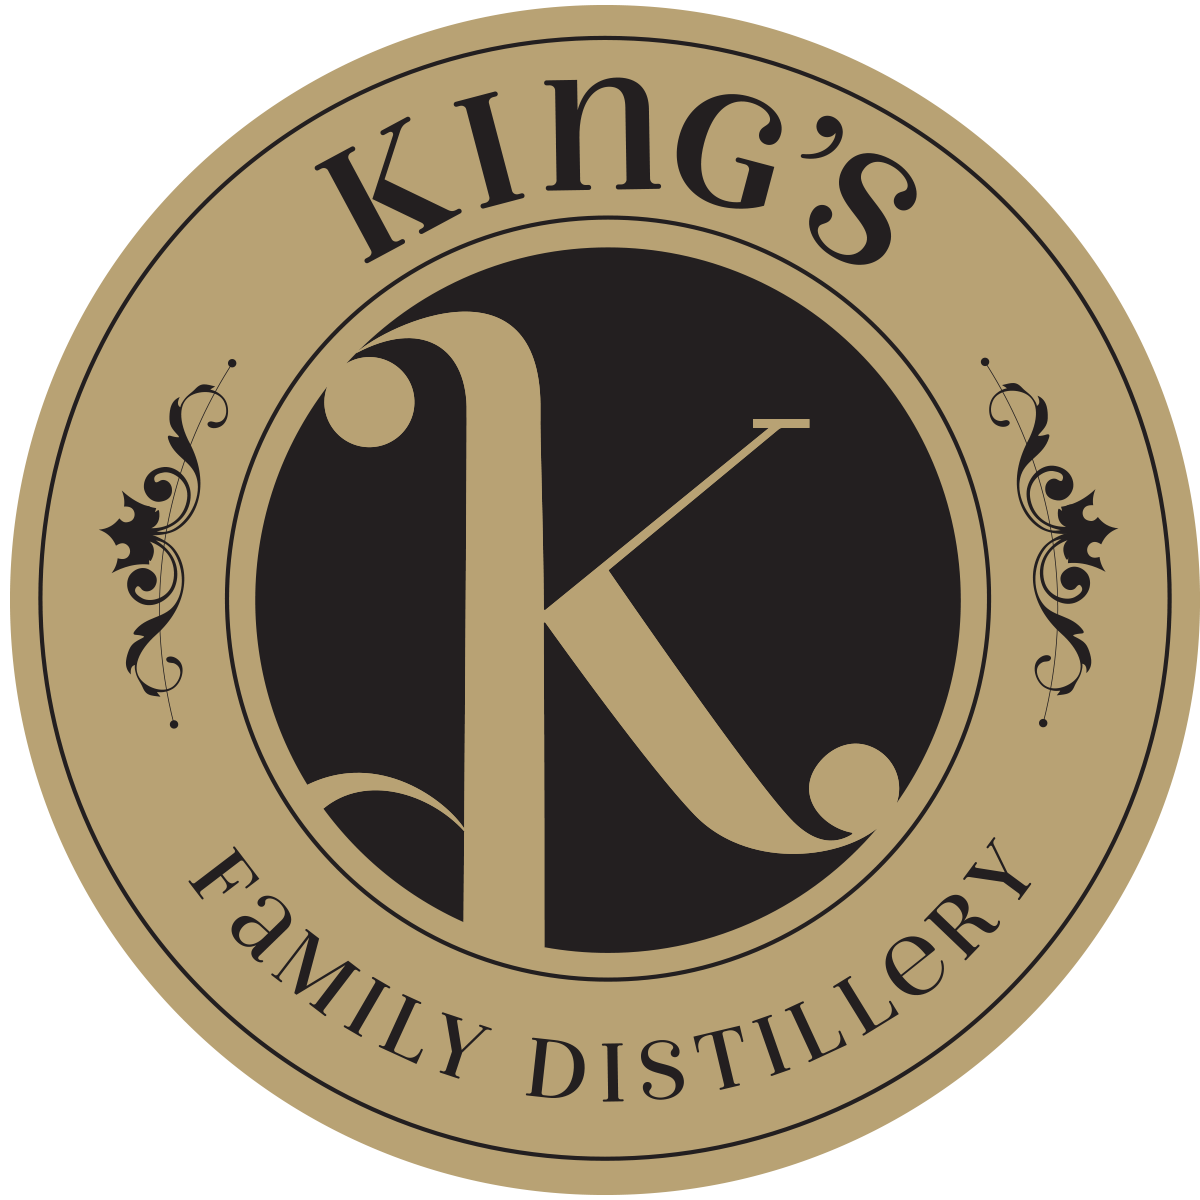 King's Family Distillery